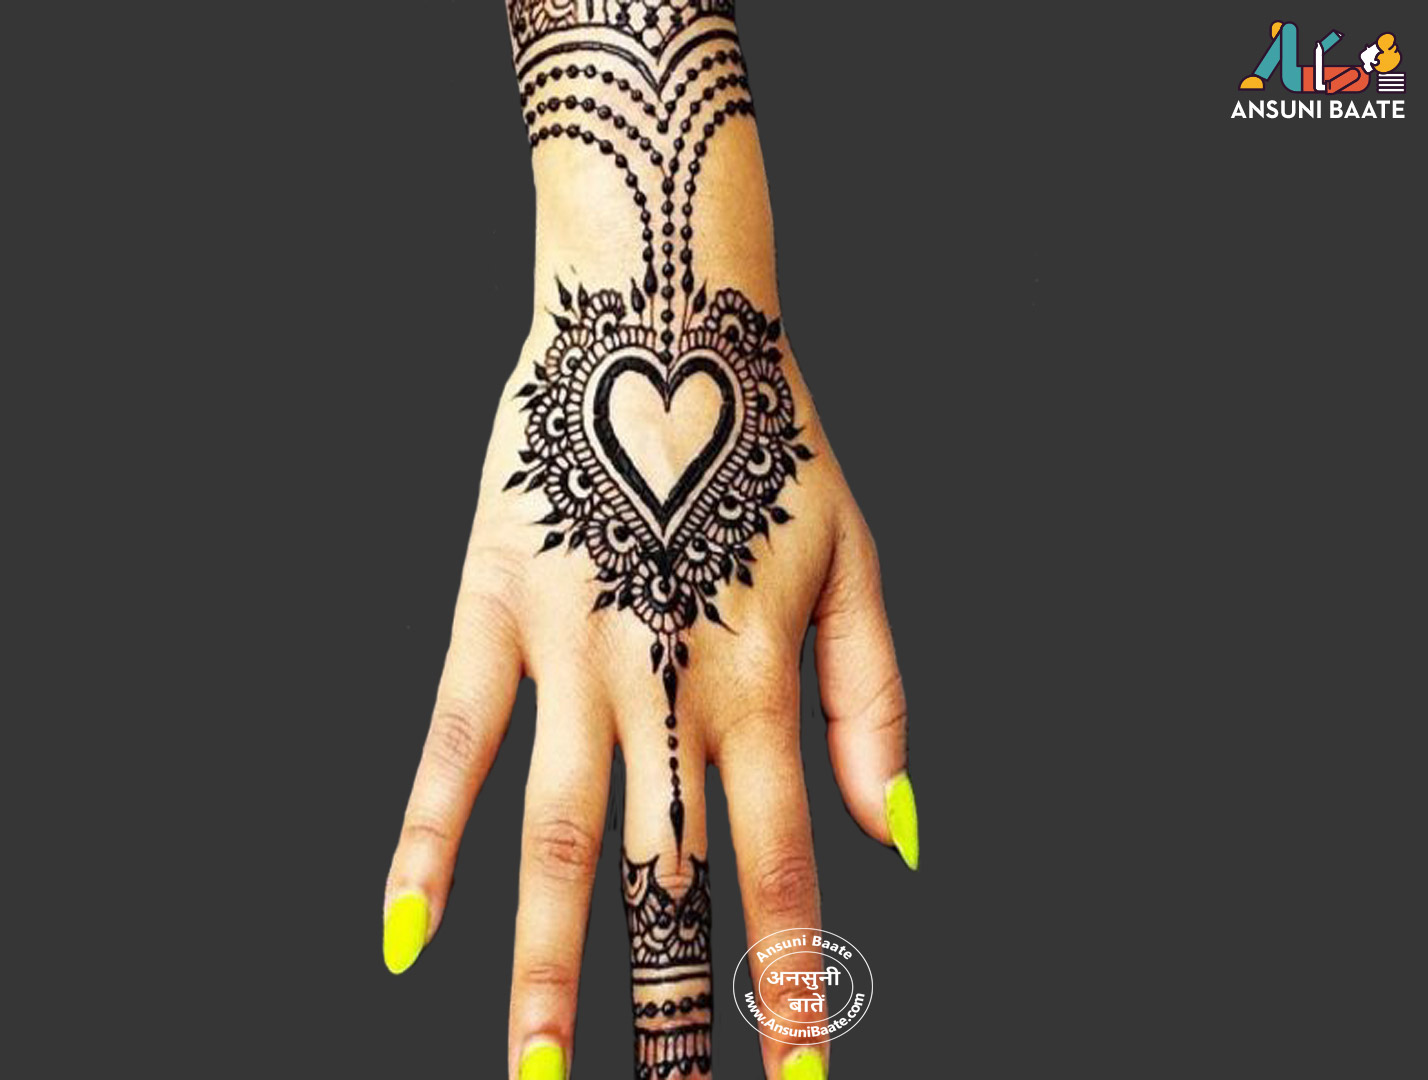 simple mehndi design for hands, simple mehndi design for feet, simple mehndi design for girls, simple mehndi design for fingers, simple mehndi design for beginners, simple mehndi's design is beautiful, simple mehndi design and easy, simple mehndi design like tattoo